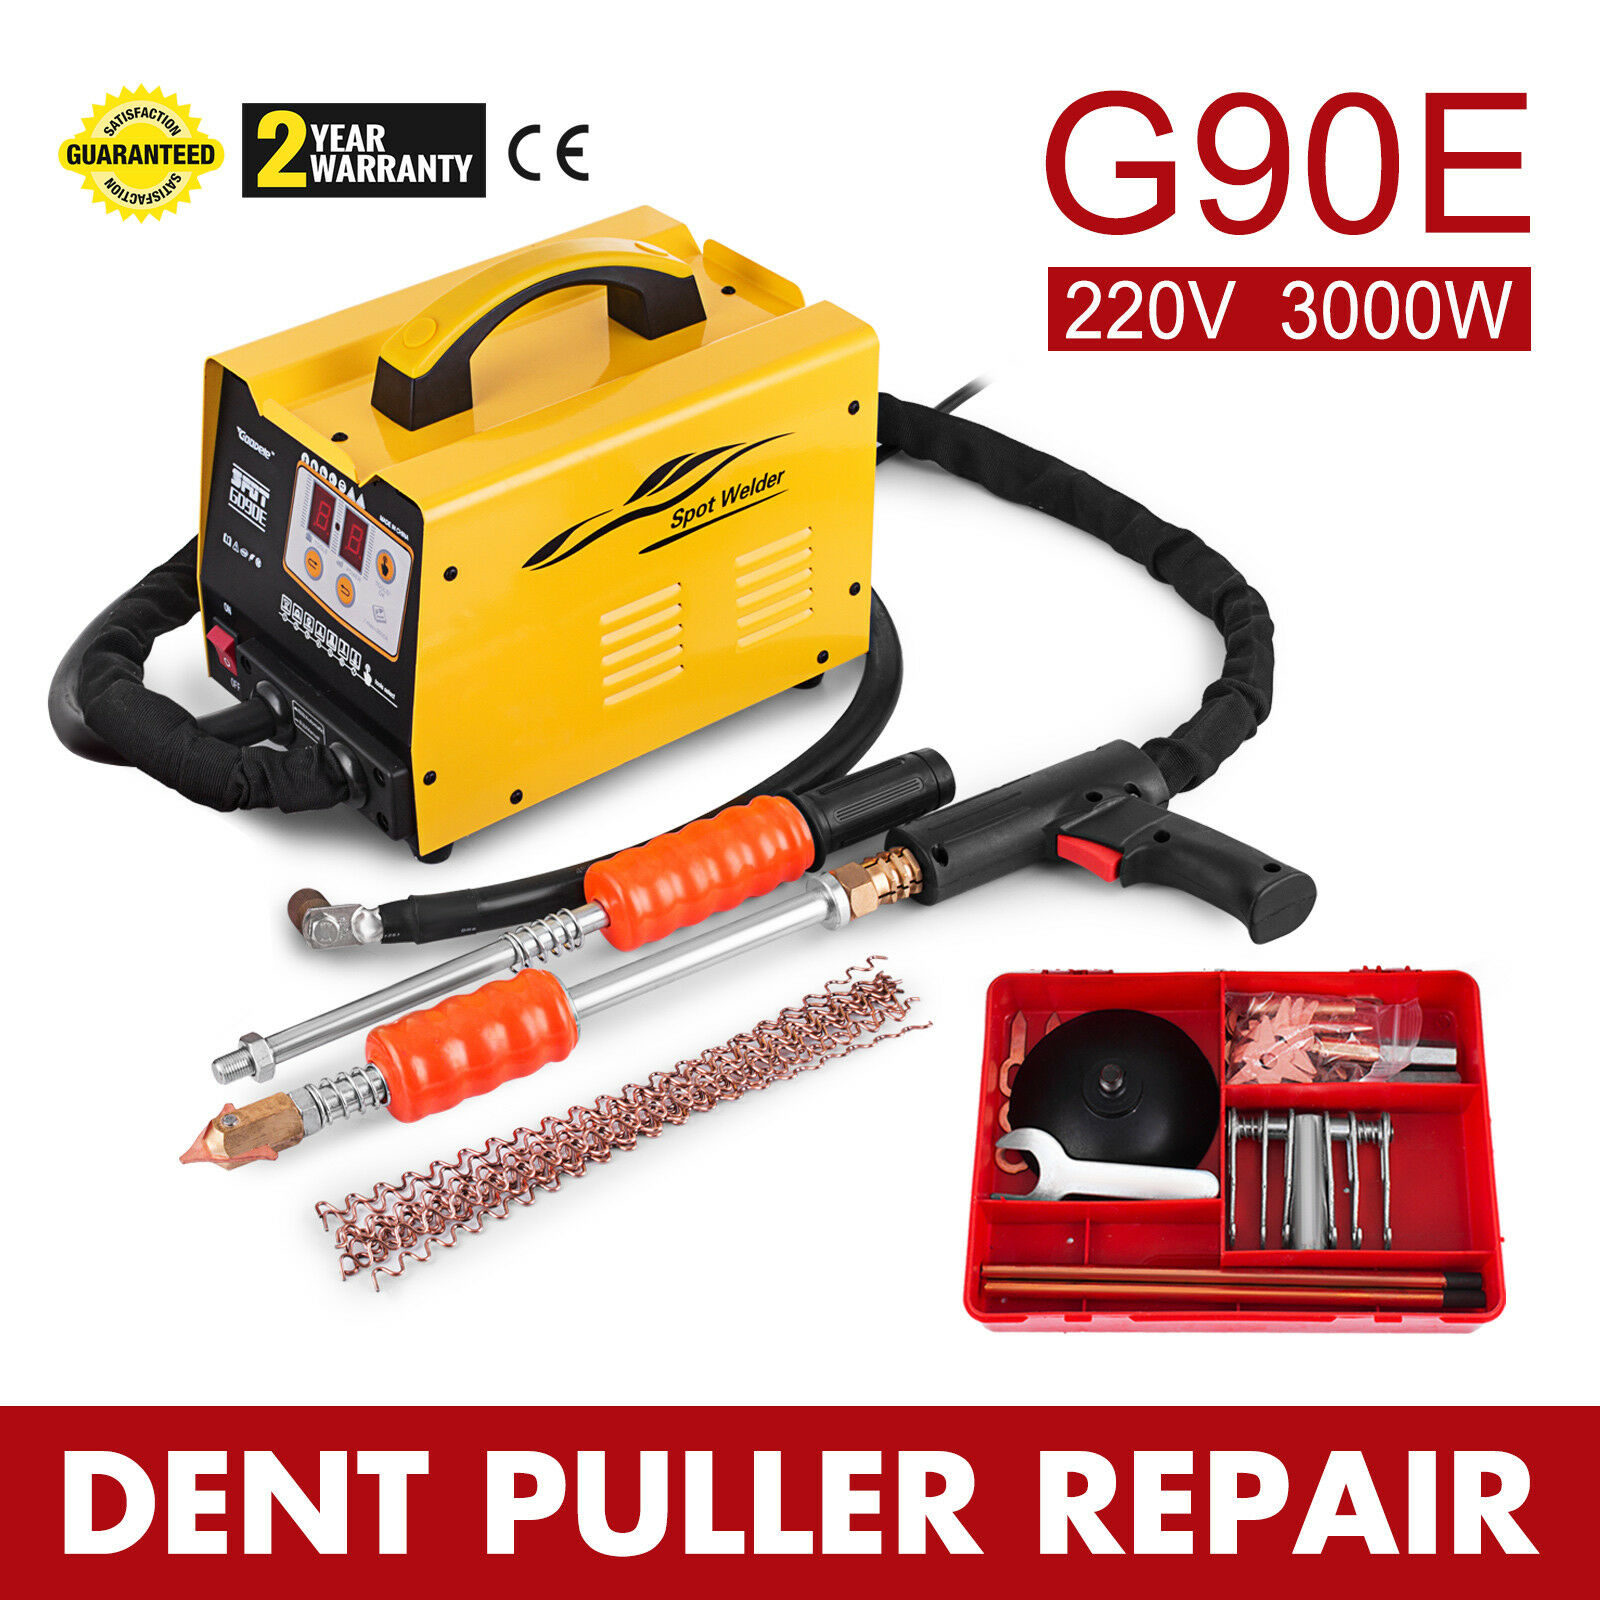 220V G90E Spot Puller Bonnet Dent Repair Welder Bonnet 3500A Panel 7 Channels